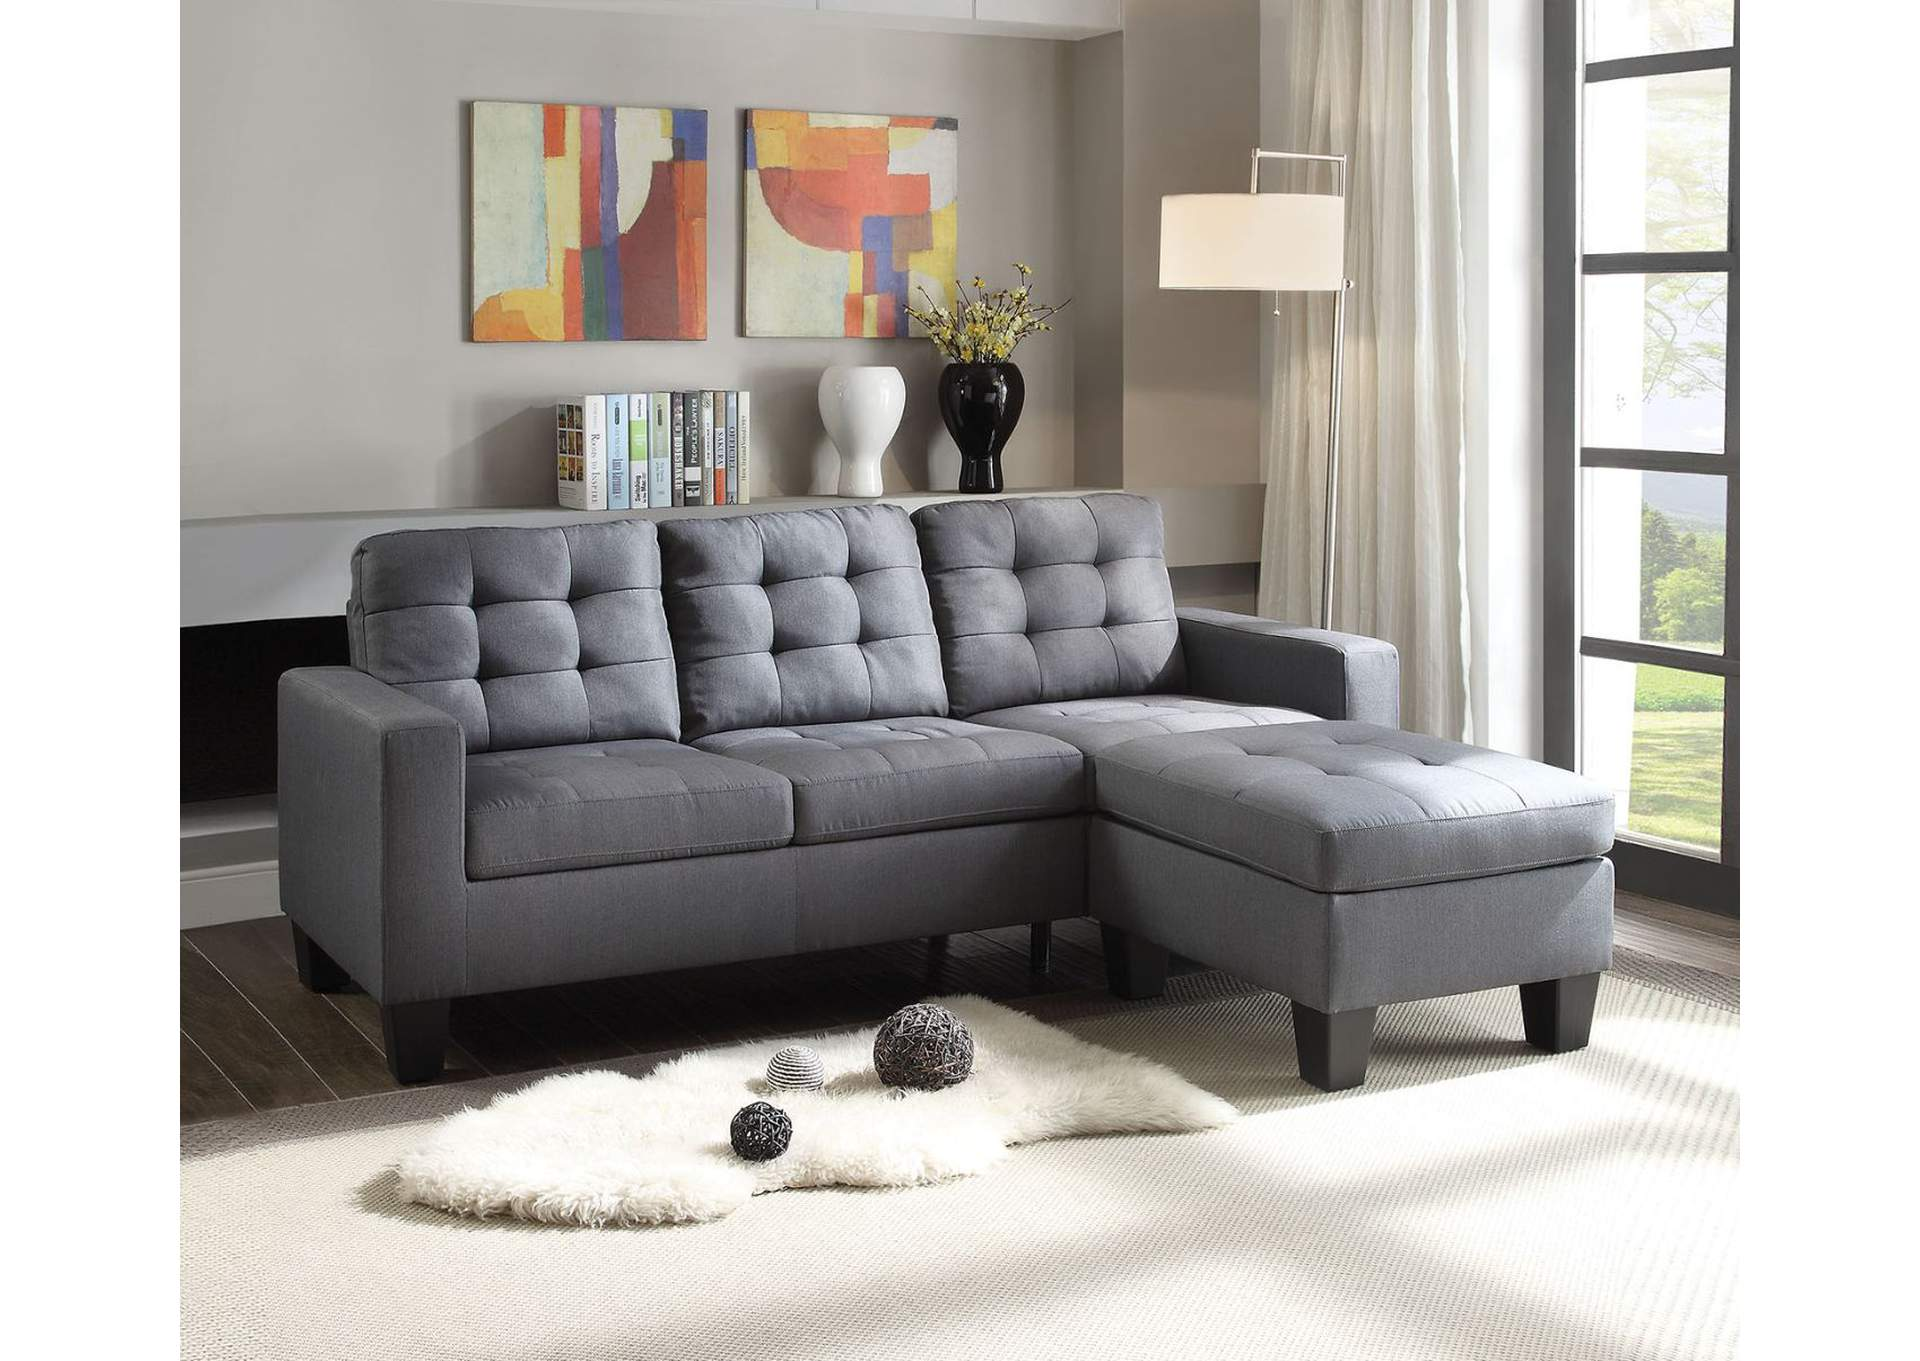 Peachy Best Buy Furniture And Mattress Earsom Gray Sectional Sofa Dailytribune Chair Design For Home Dailytribuneorg